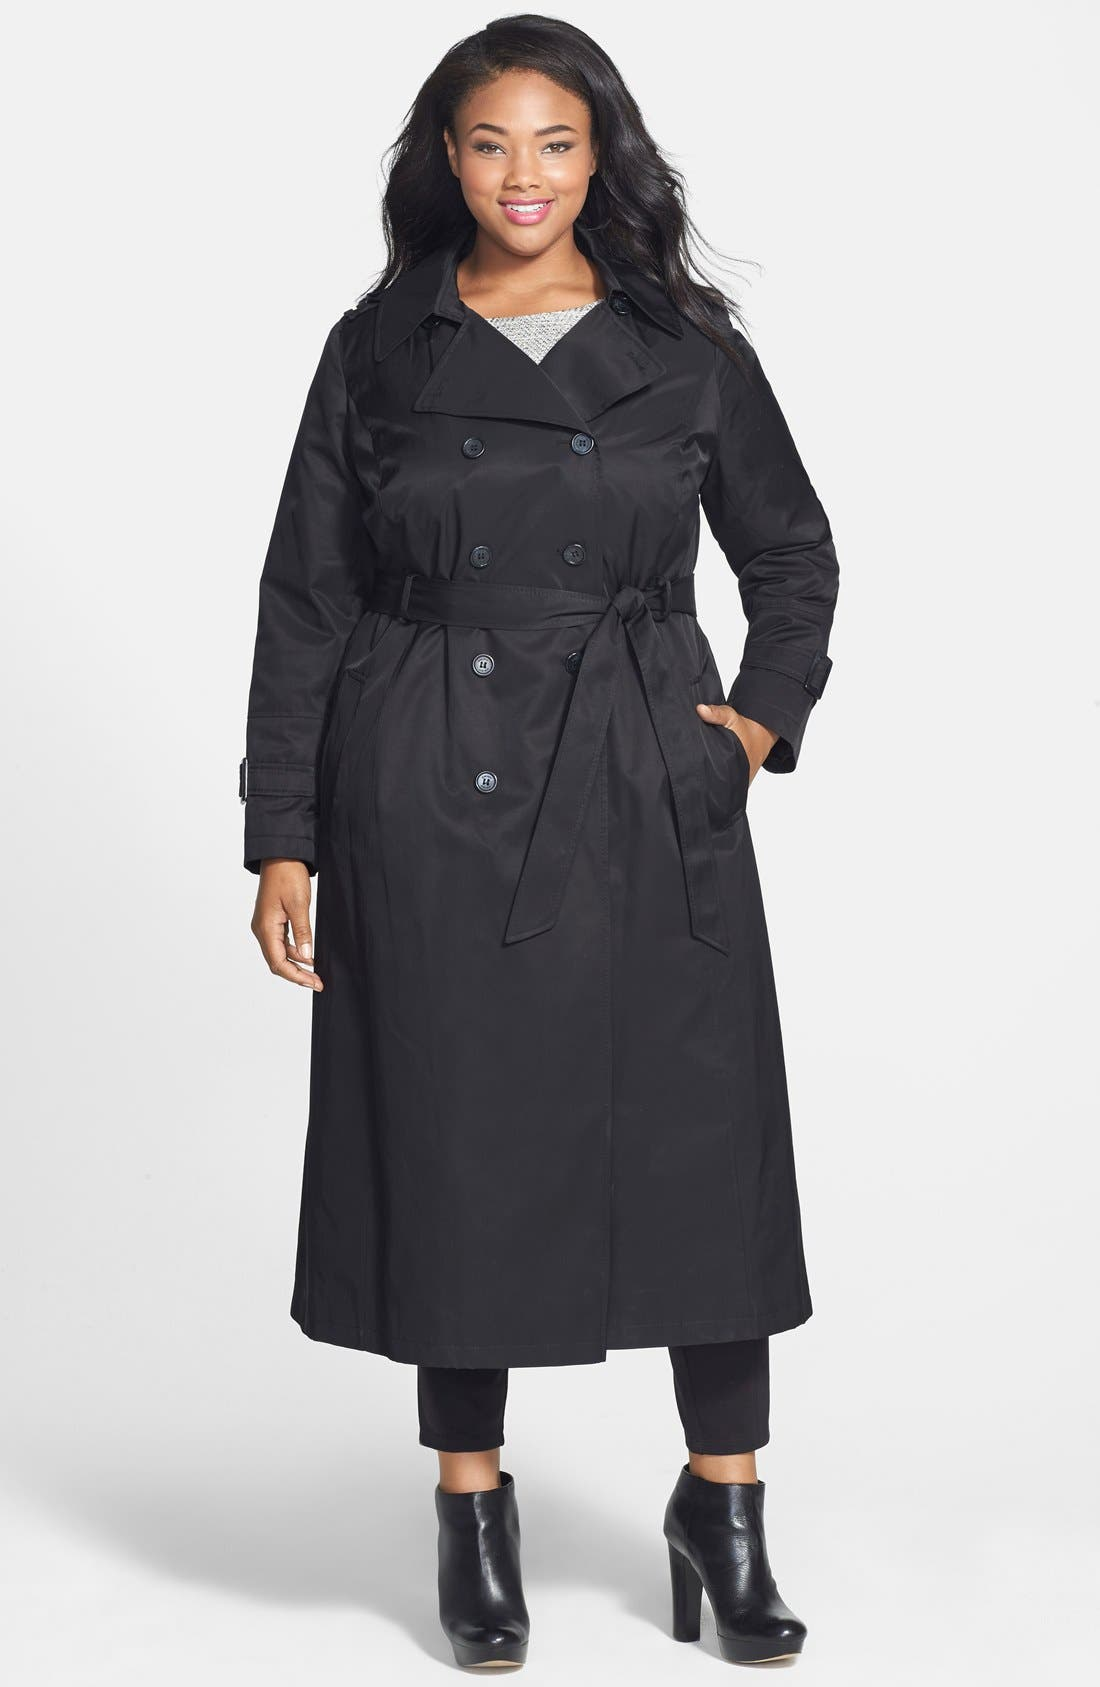 Main Image - DKNY Long Trench Coat with Removable Hood (Plus Size)